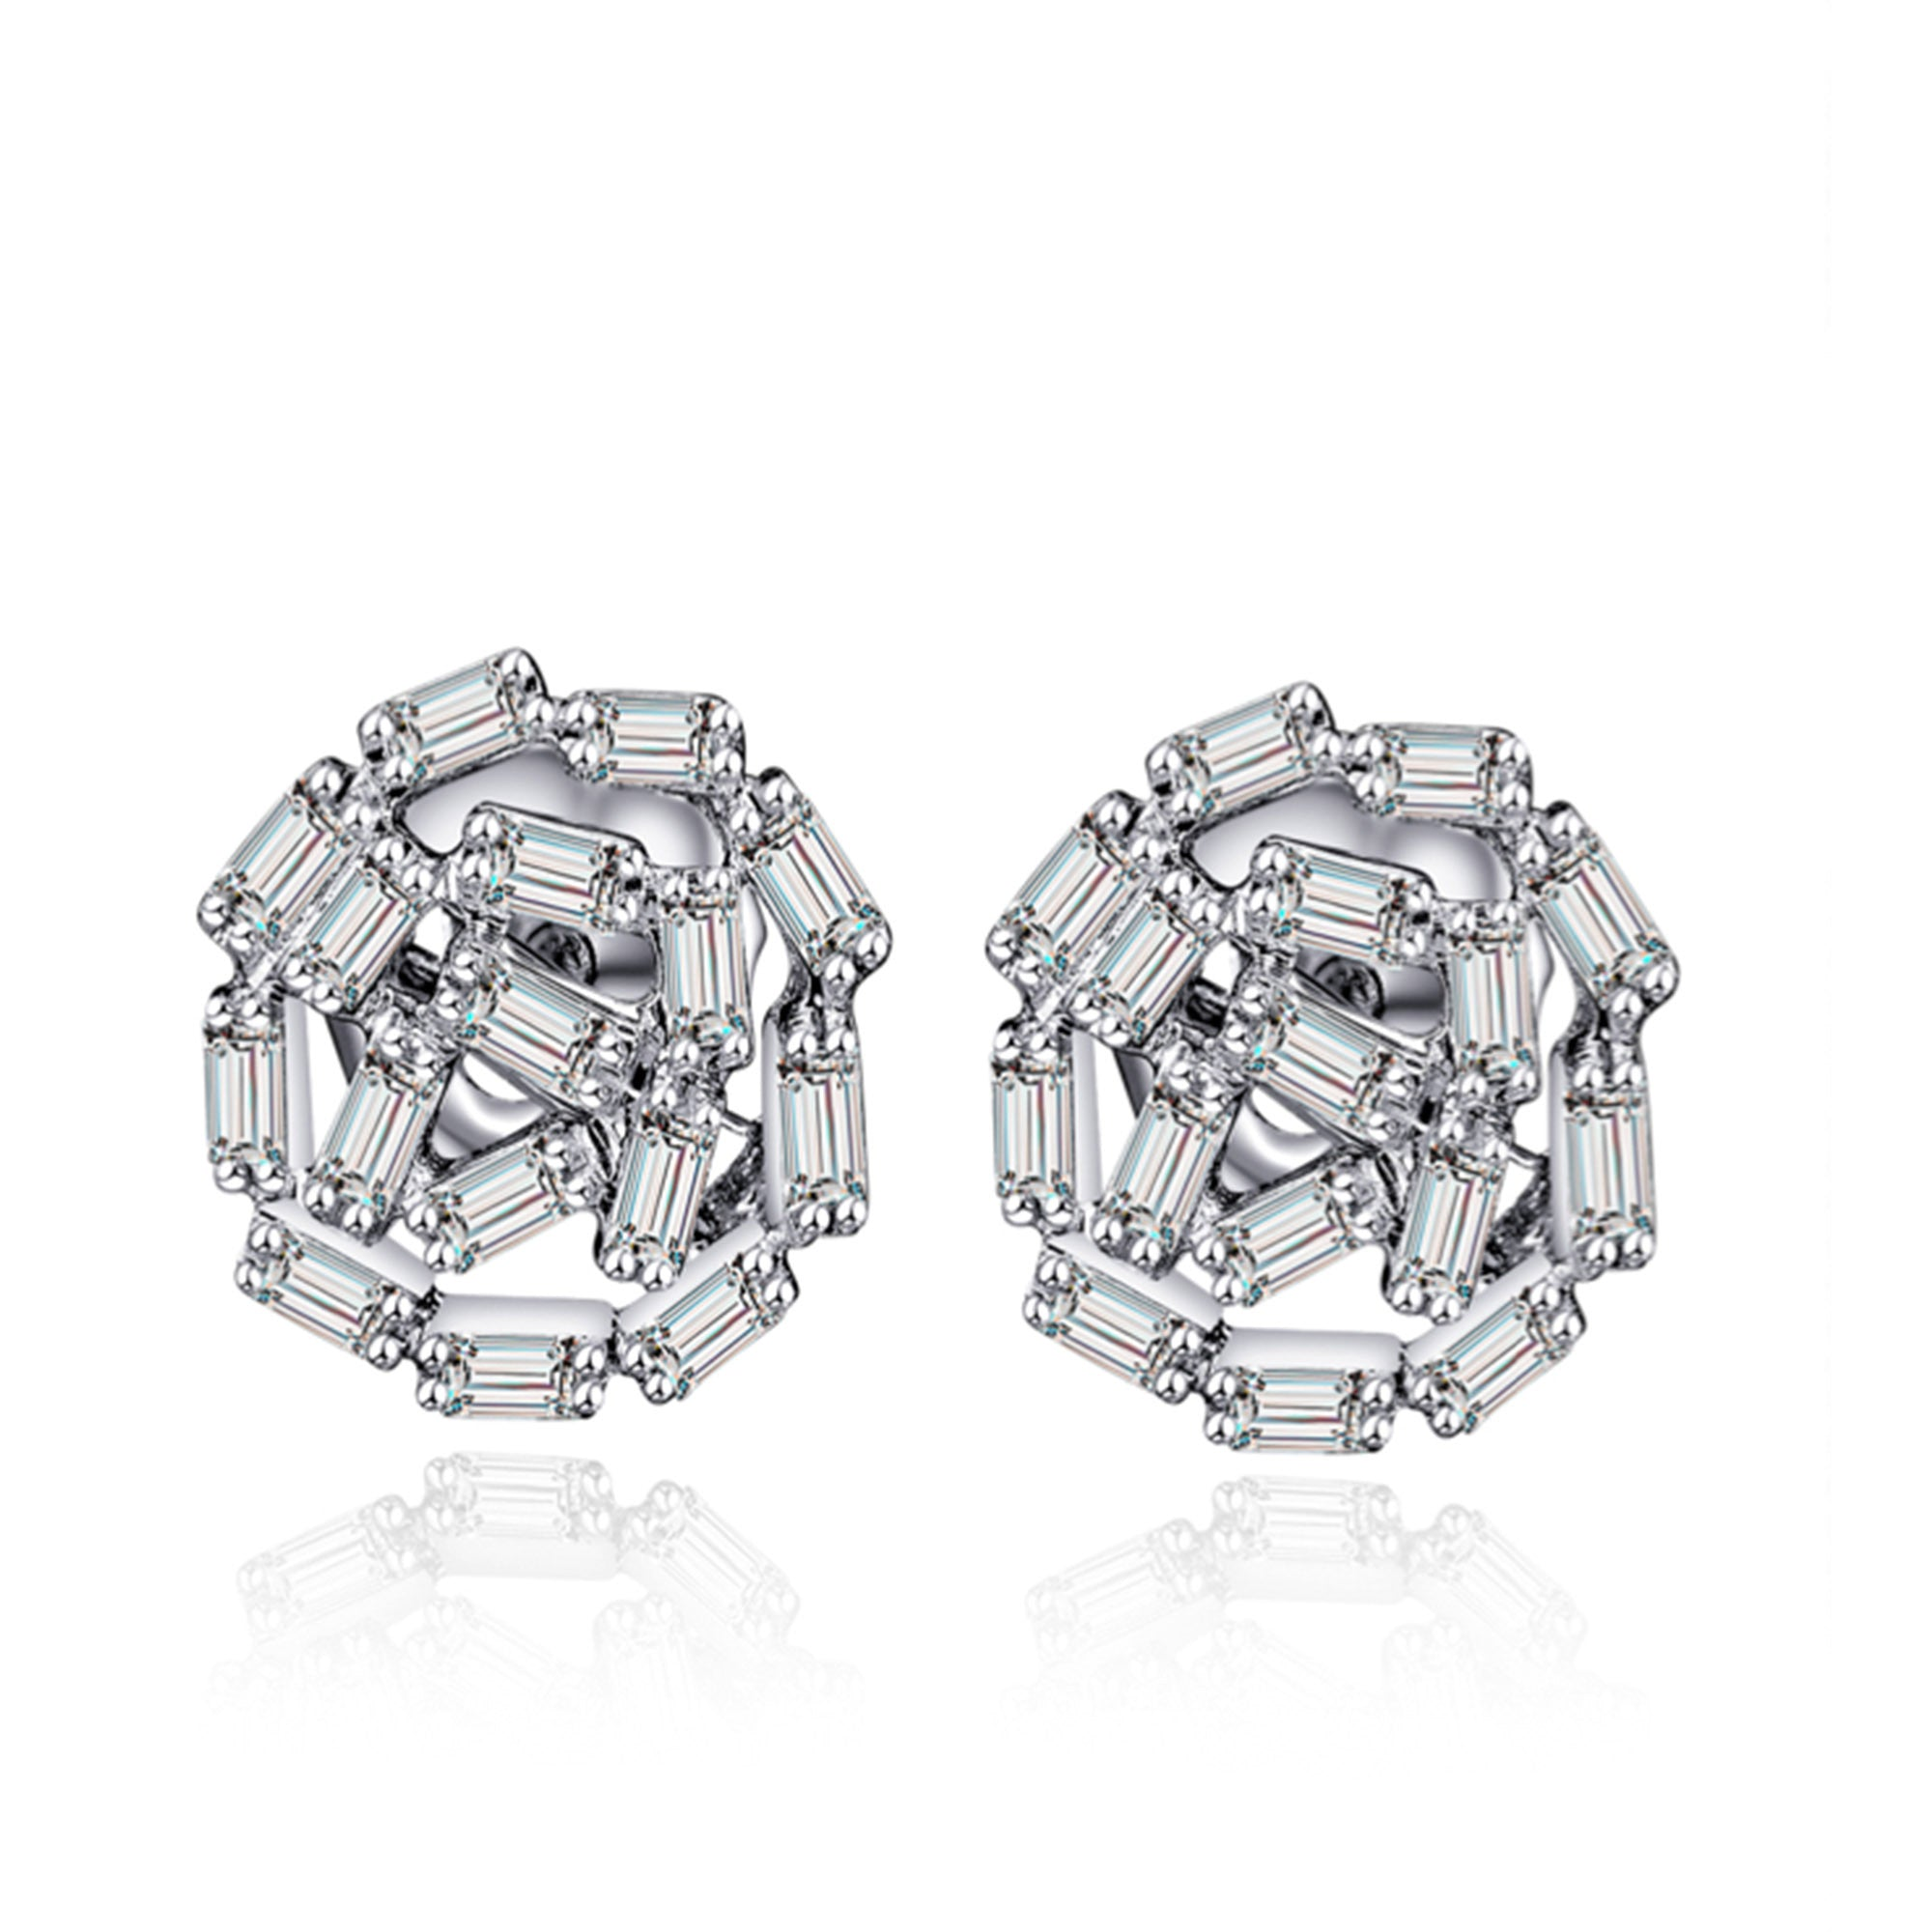 gold and jewellery mcdonough aurora earrings diamond stud kiki product